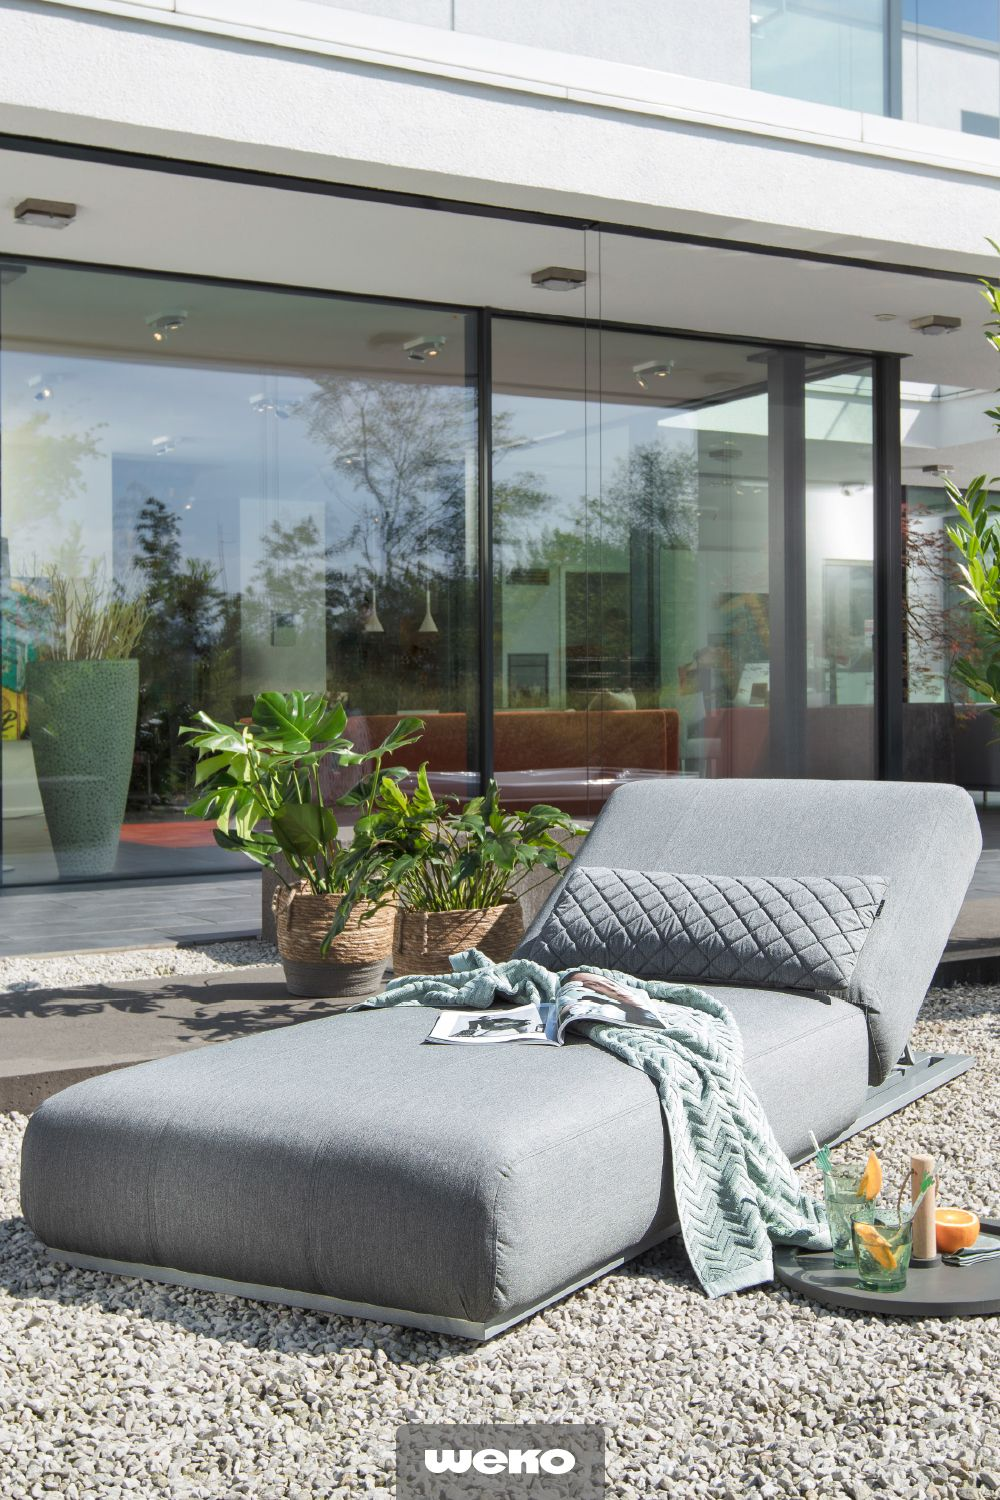 coole outdoor-liege in grau | outdoor liege, moderner patio